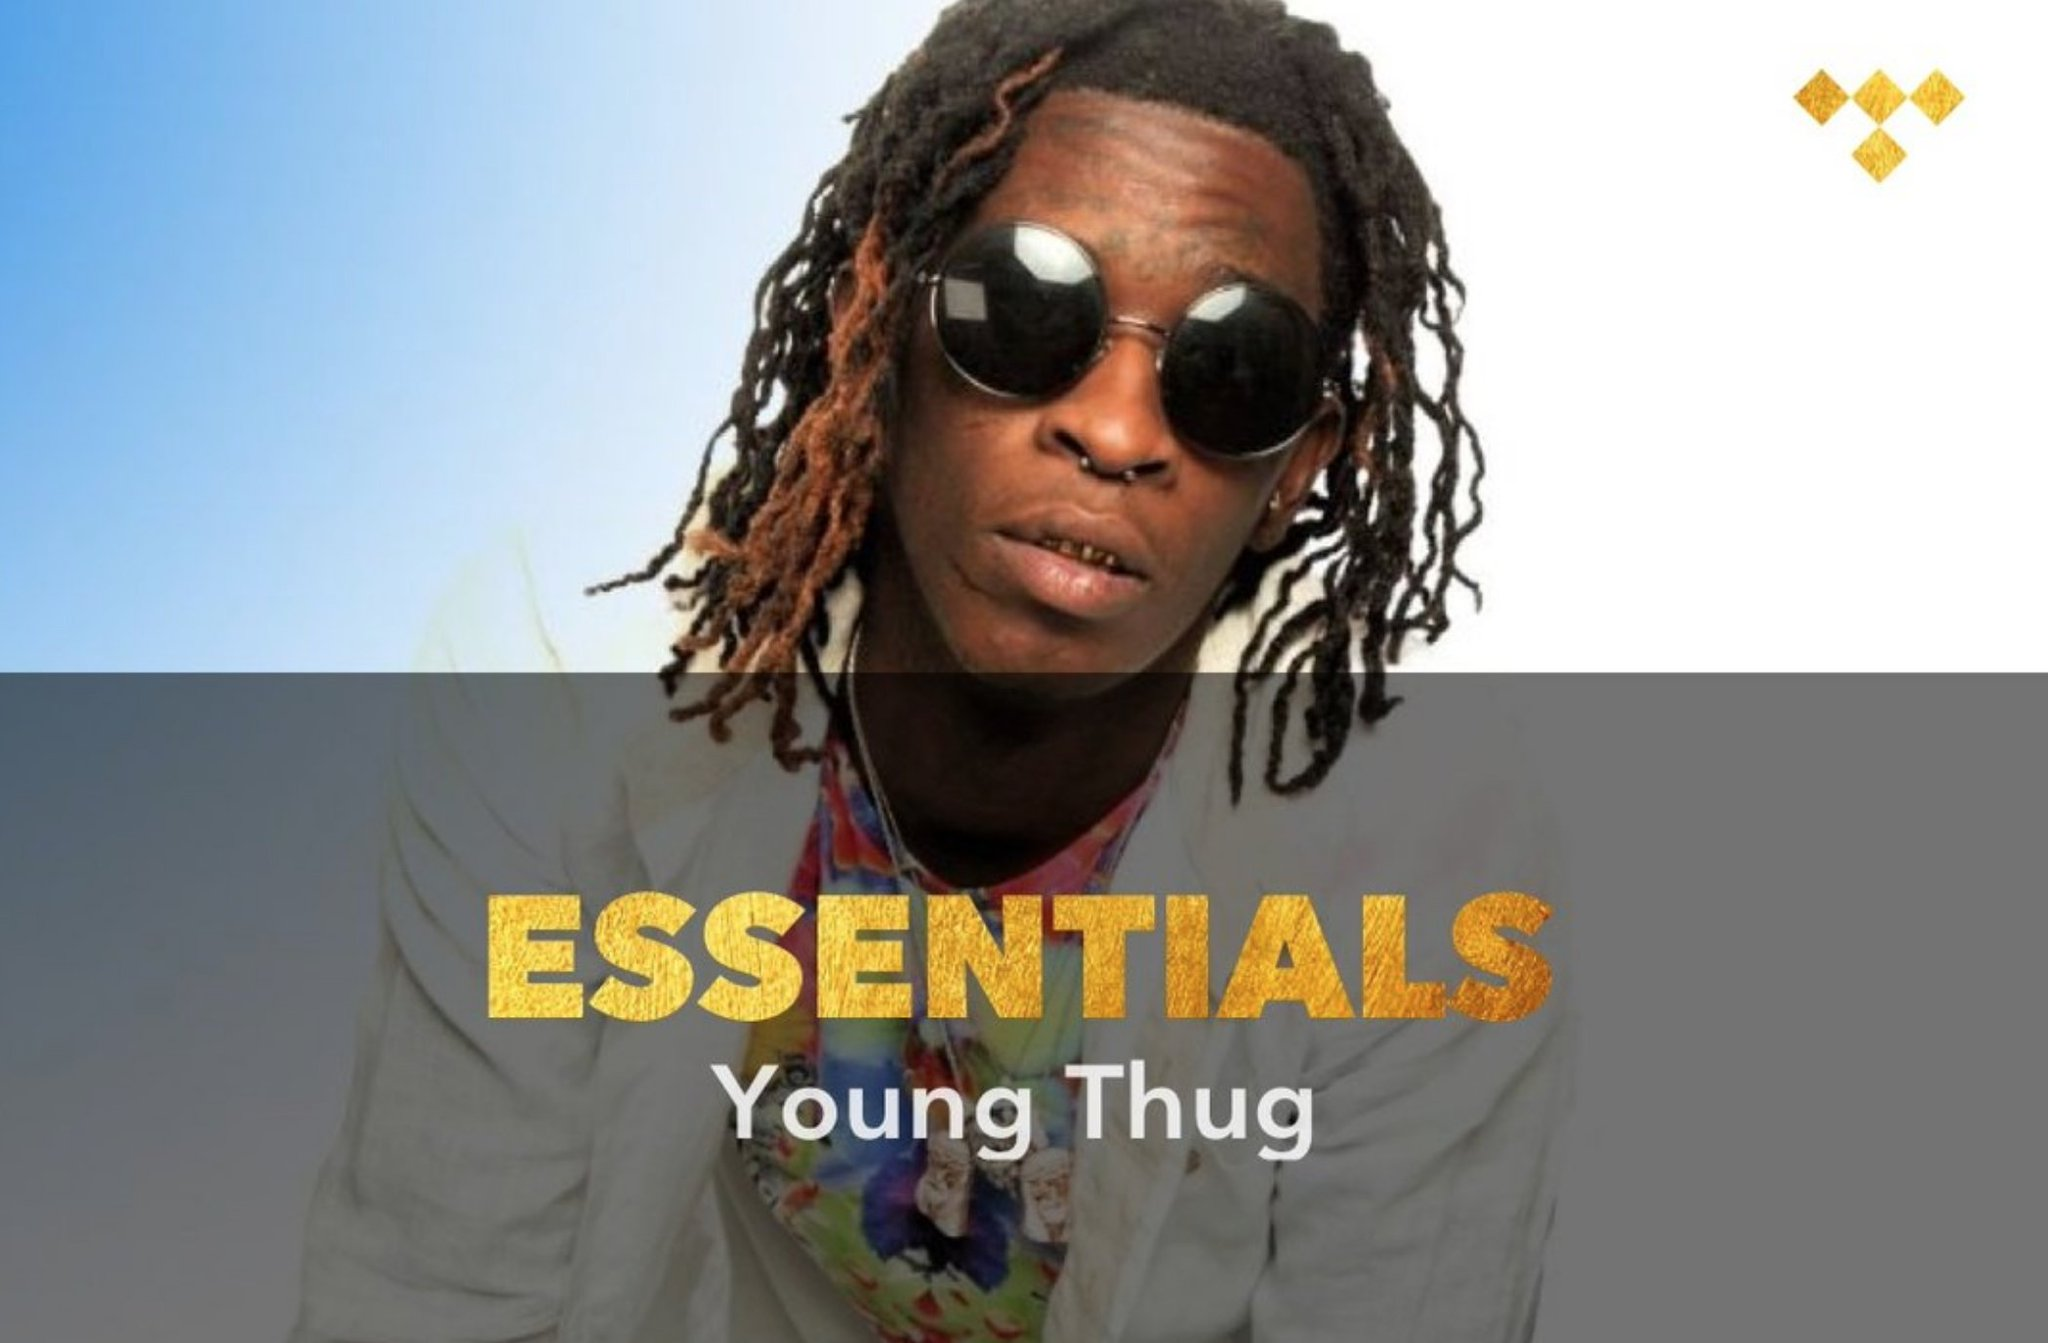 Young Thug Essentials https://t.co/2NgS0iYeUw #TIDAL https://t.co/PzJ4mxVj2z